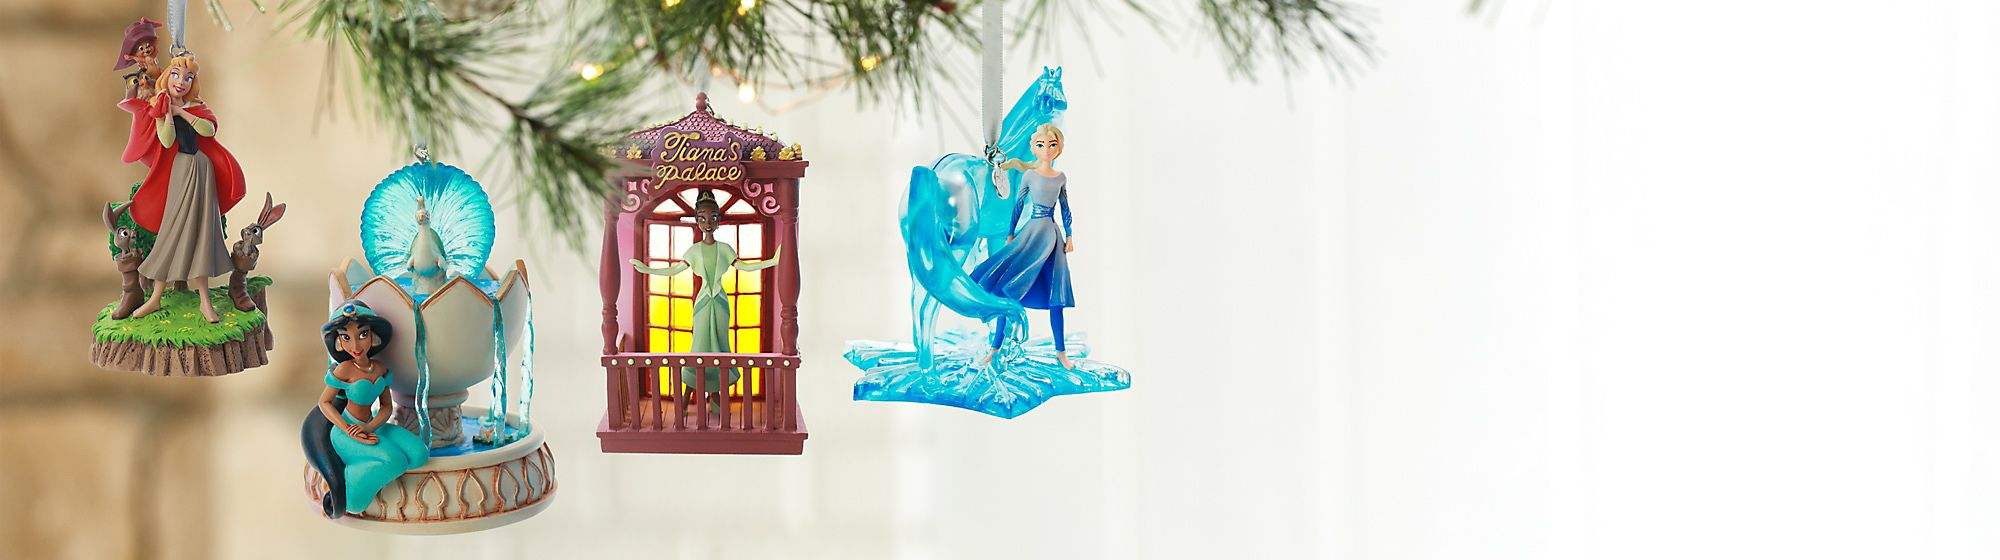 Ornaments Timeless treasures, Disney figurines and the coolest collectibles to cherish